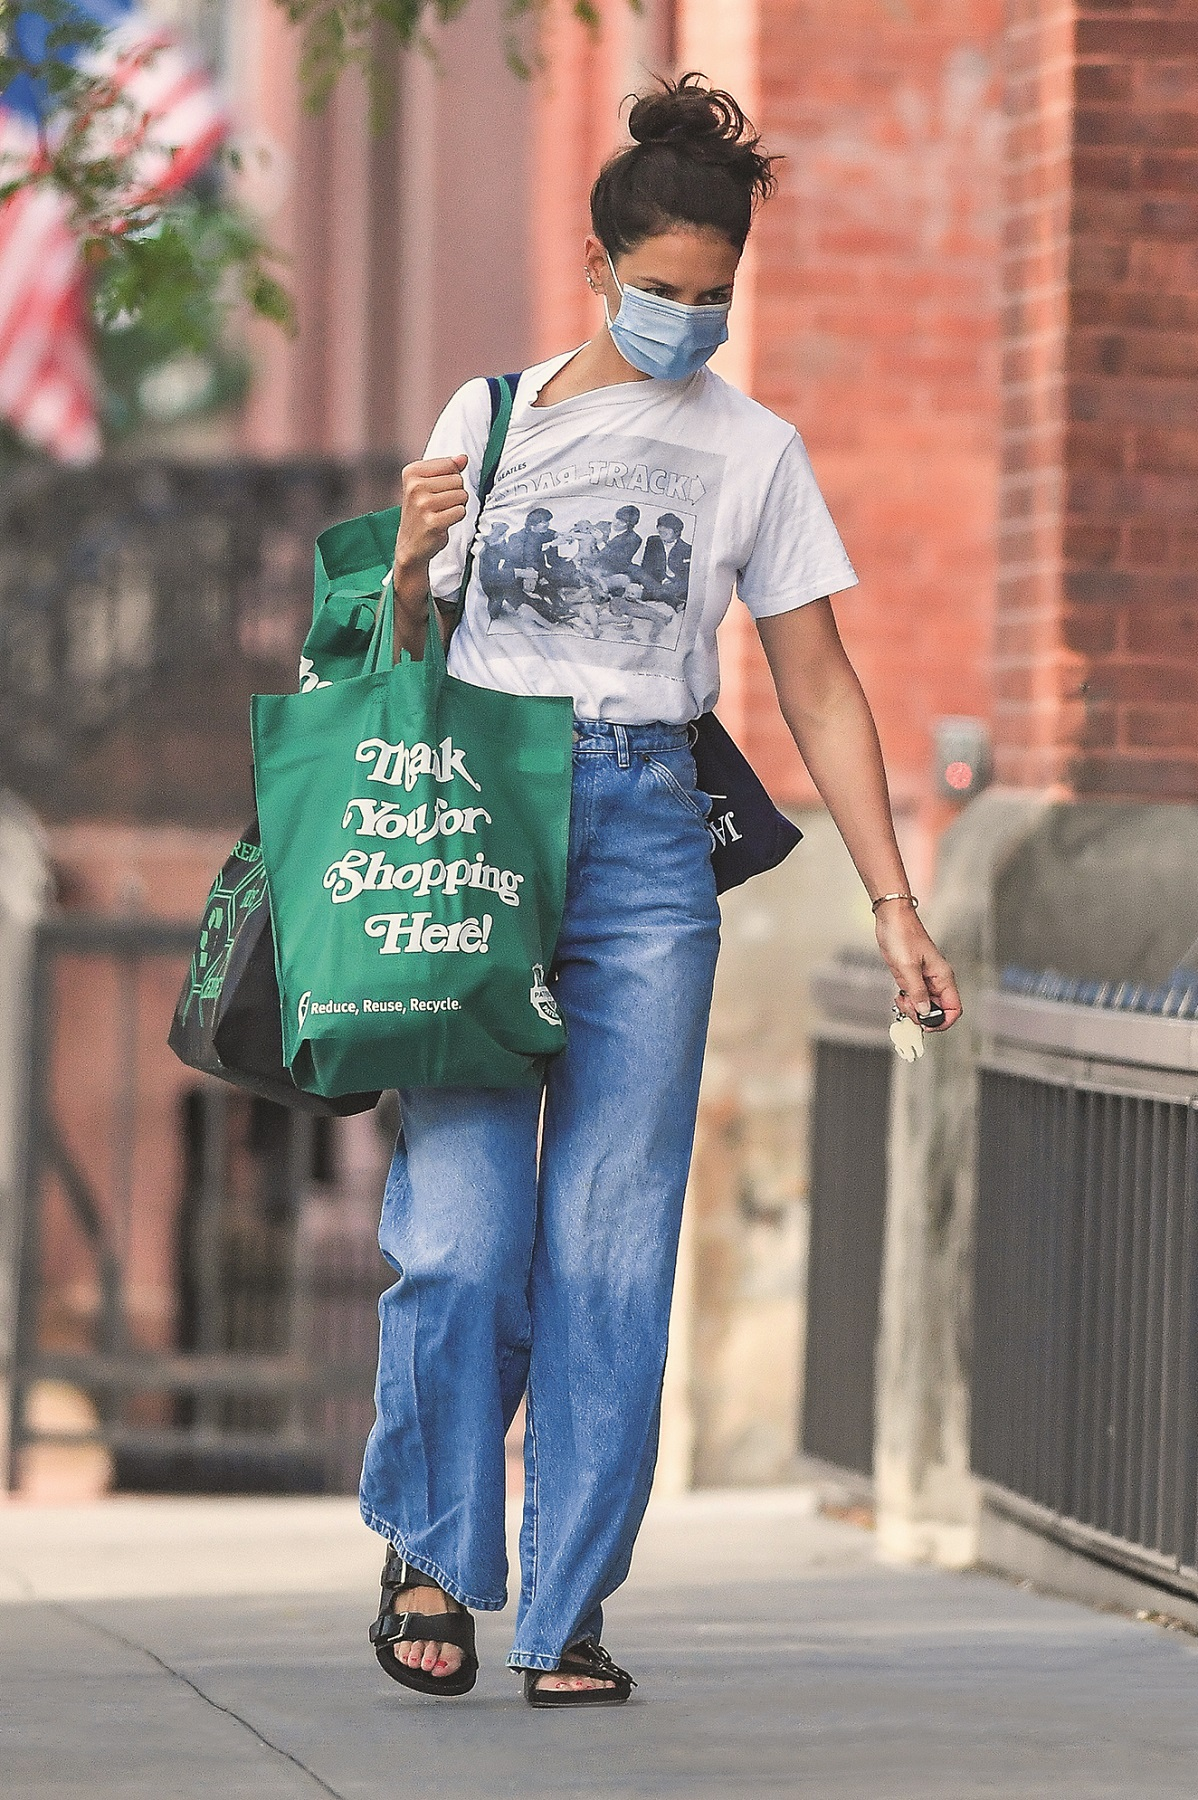 EXCLUSIVE: Katie Holmes wears a Beatles tee shirt while food shopping in New York City  Pictured: Katie Holmes,Image: 553250591, License: Rights-managed, Restrictions: , Model Release: no, Credit line: Robert O'Neil / SplashNews.com / Splash / Profimedia